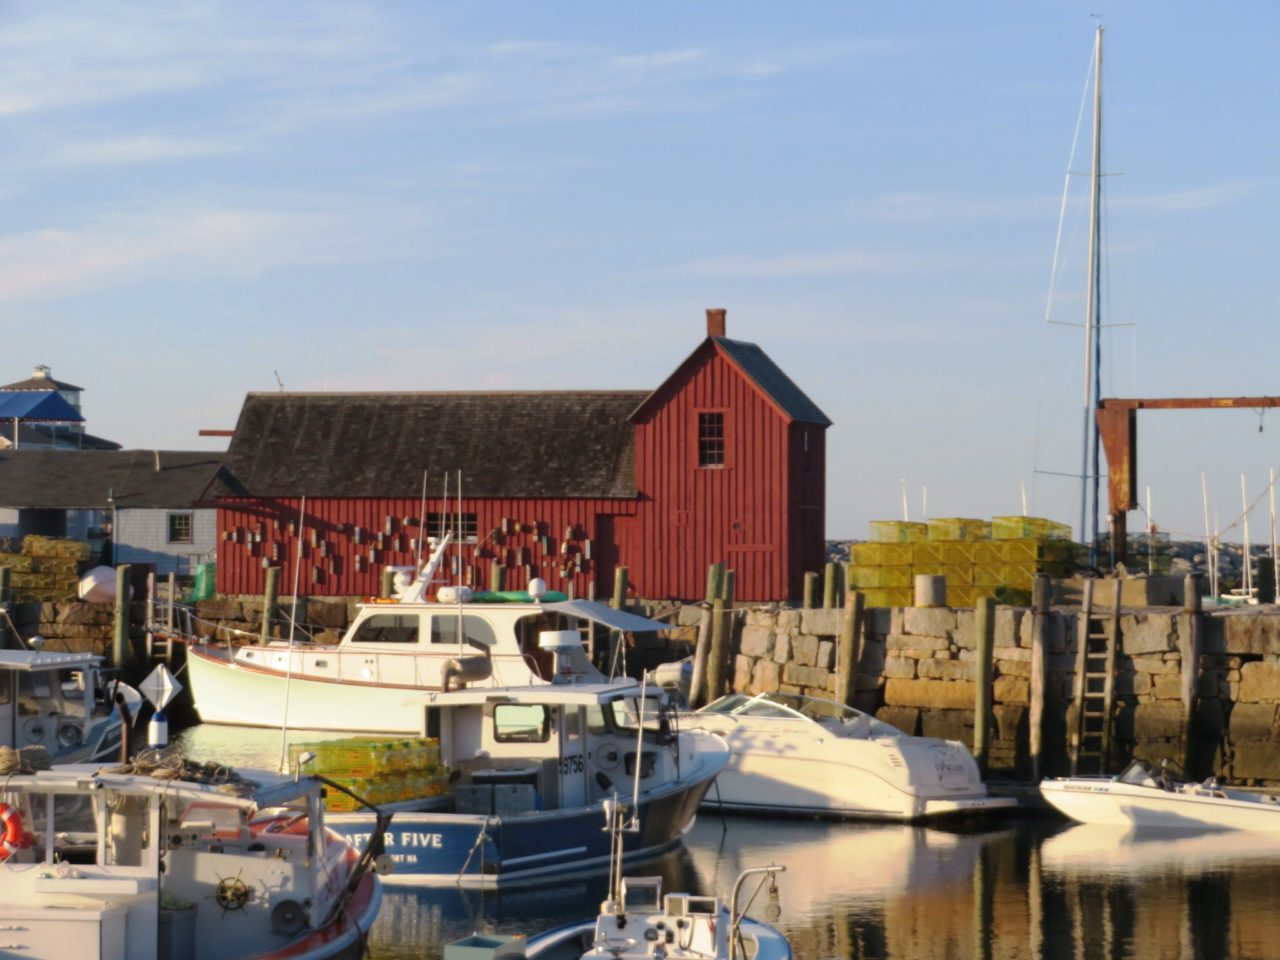 Emerson Inn by the Sea : Motif #1 in Rockport MA, the most frequently painted building in America!